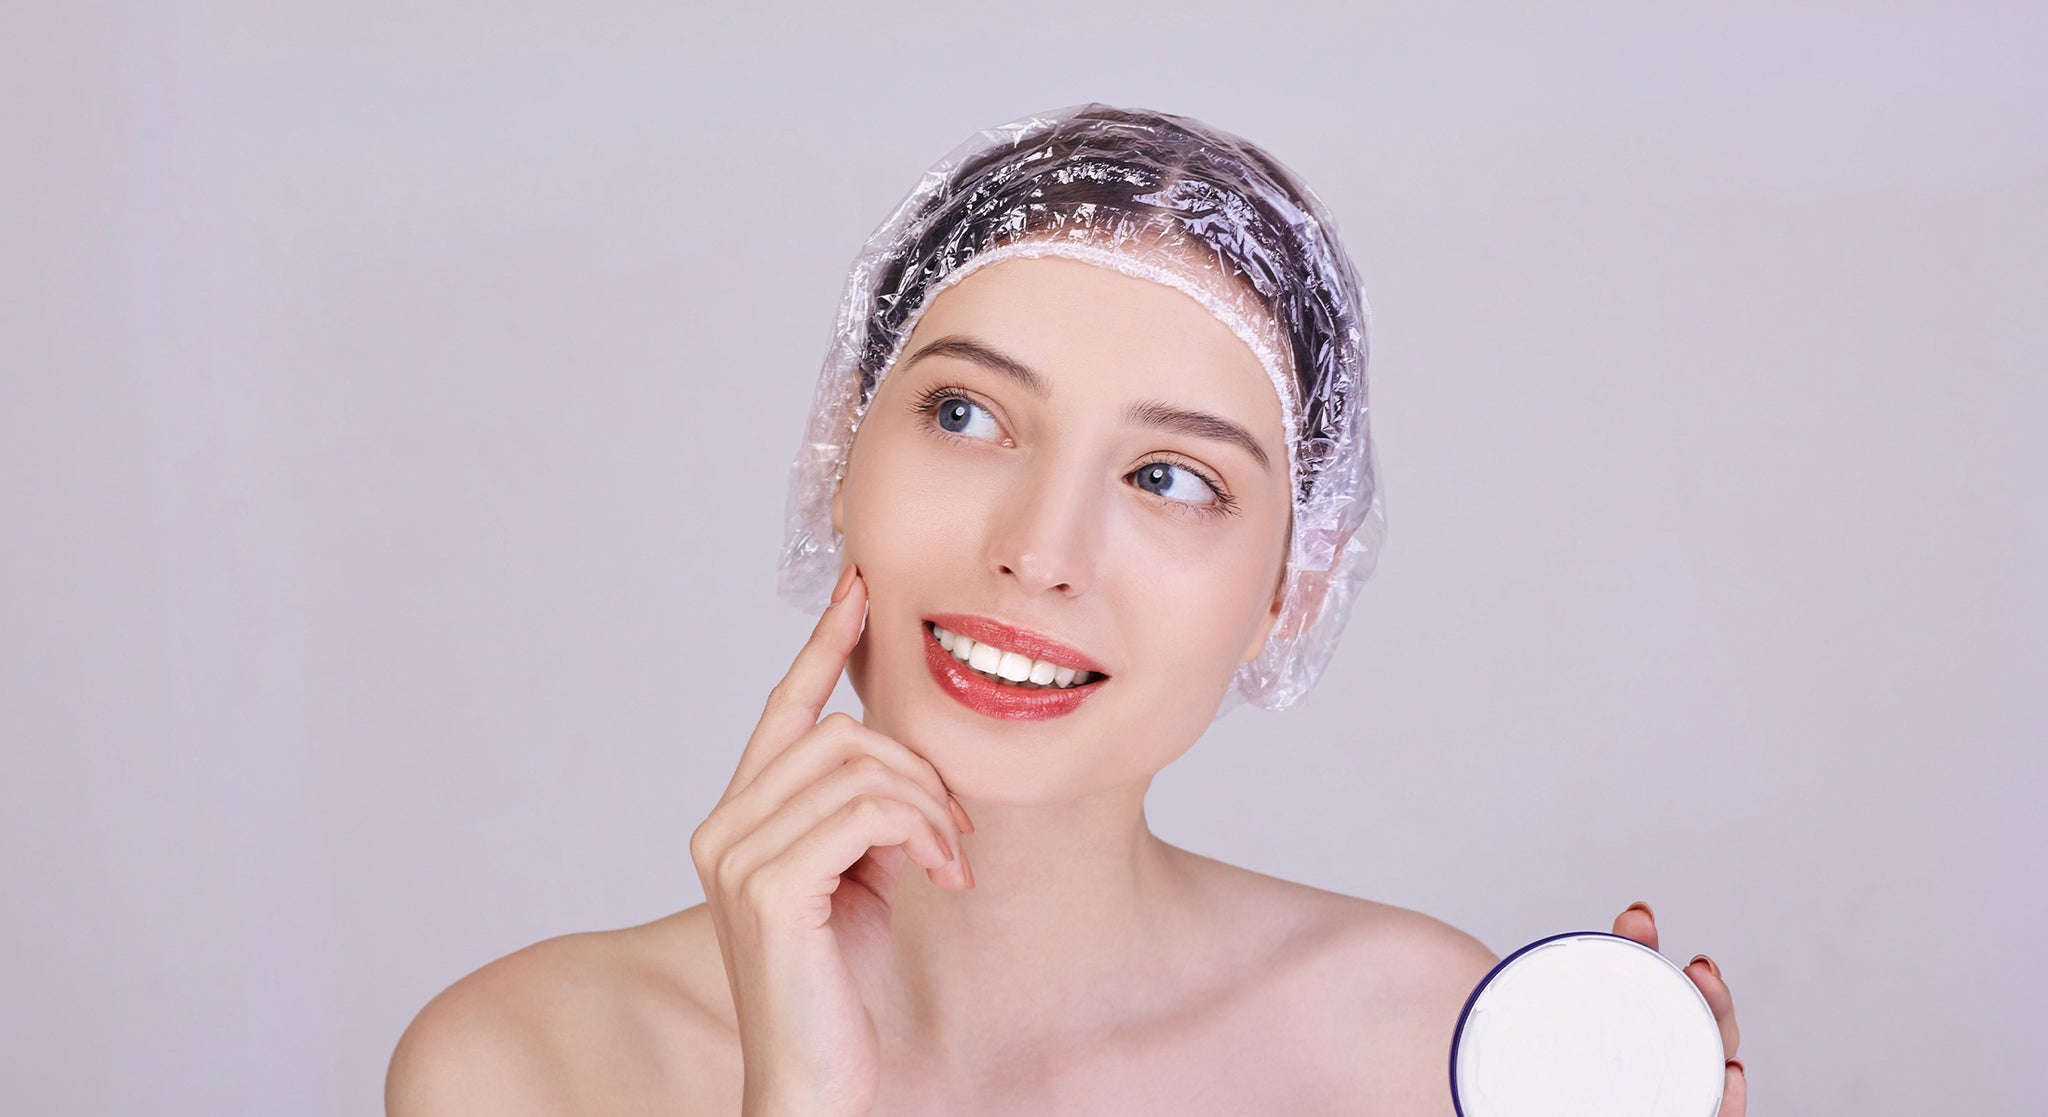 How & Why to Use Shower Cap - Worry-Free Care Tips